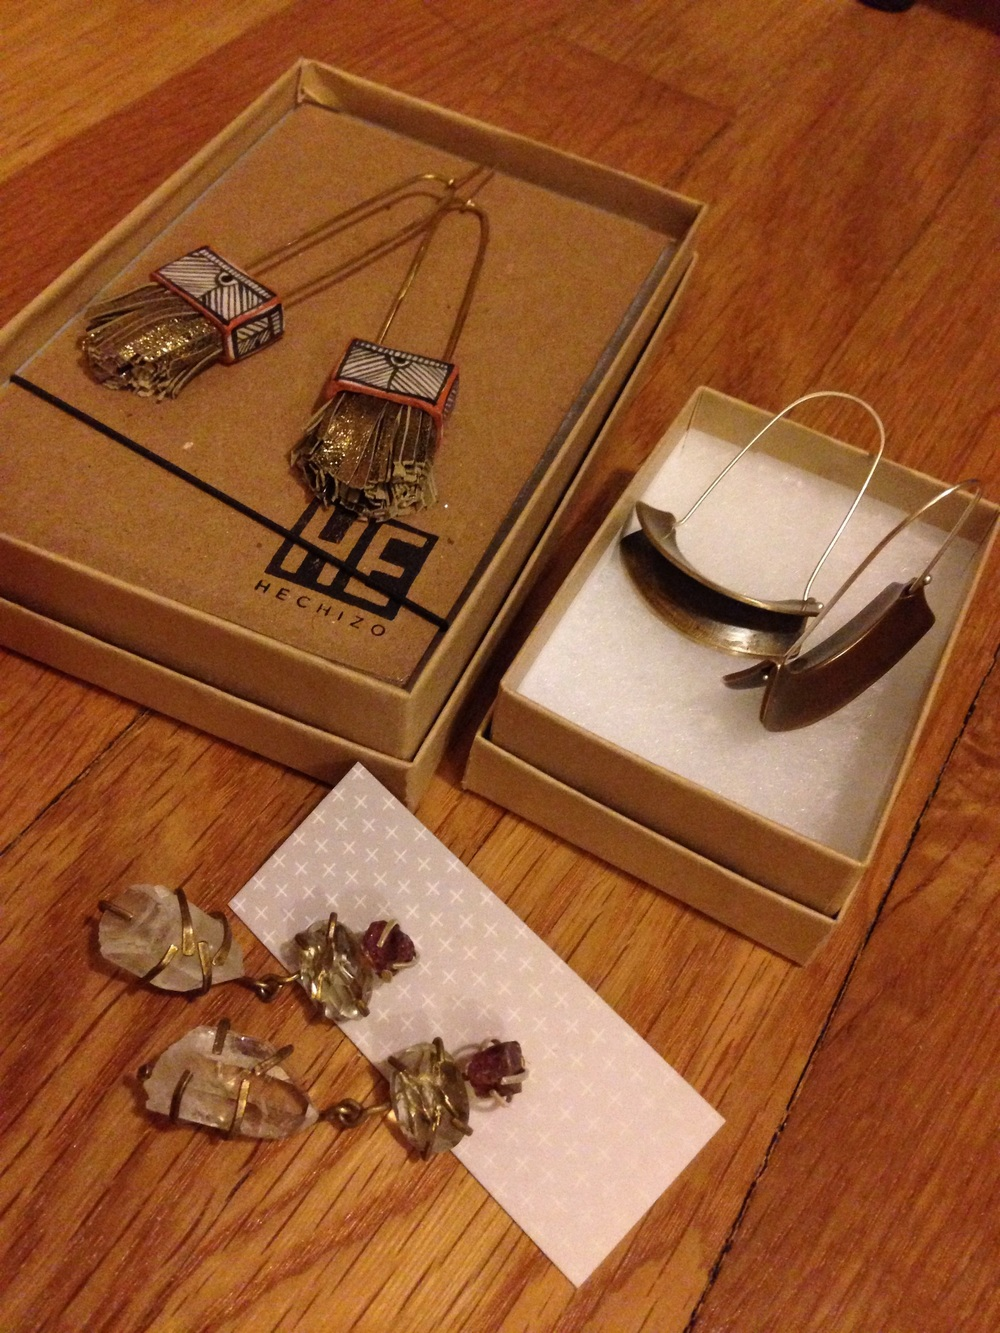 Goodies from (clockwise) Hechizo, Jessica Huber Jewelry and Harpy Jewelry